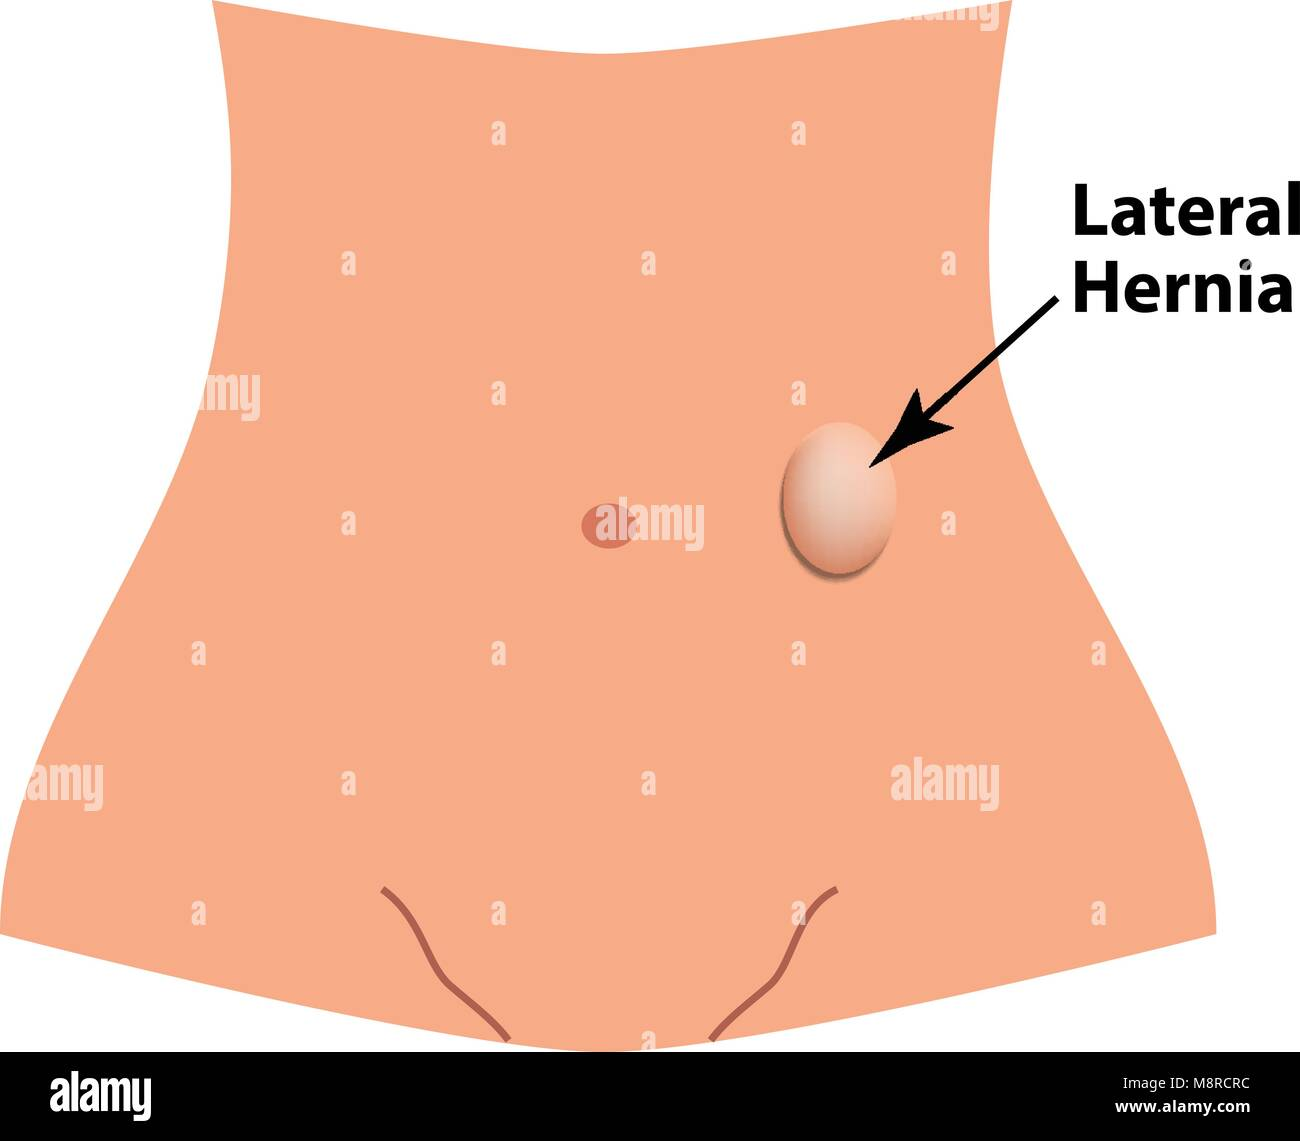 Umbilical hernia stock photos umbilical hernia stock images alamy lateral herniation intestinal hernia infographics vector illustration on isolated background stock pooptronica Image collections